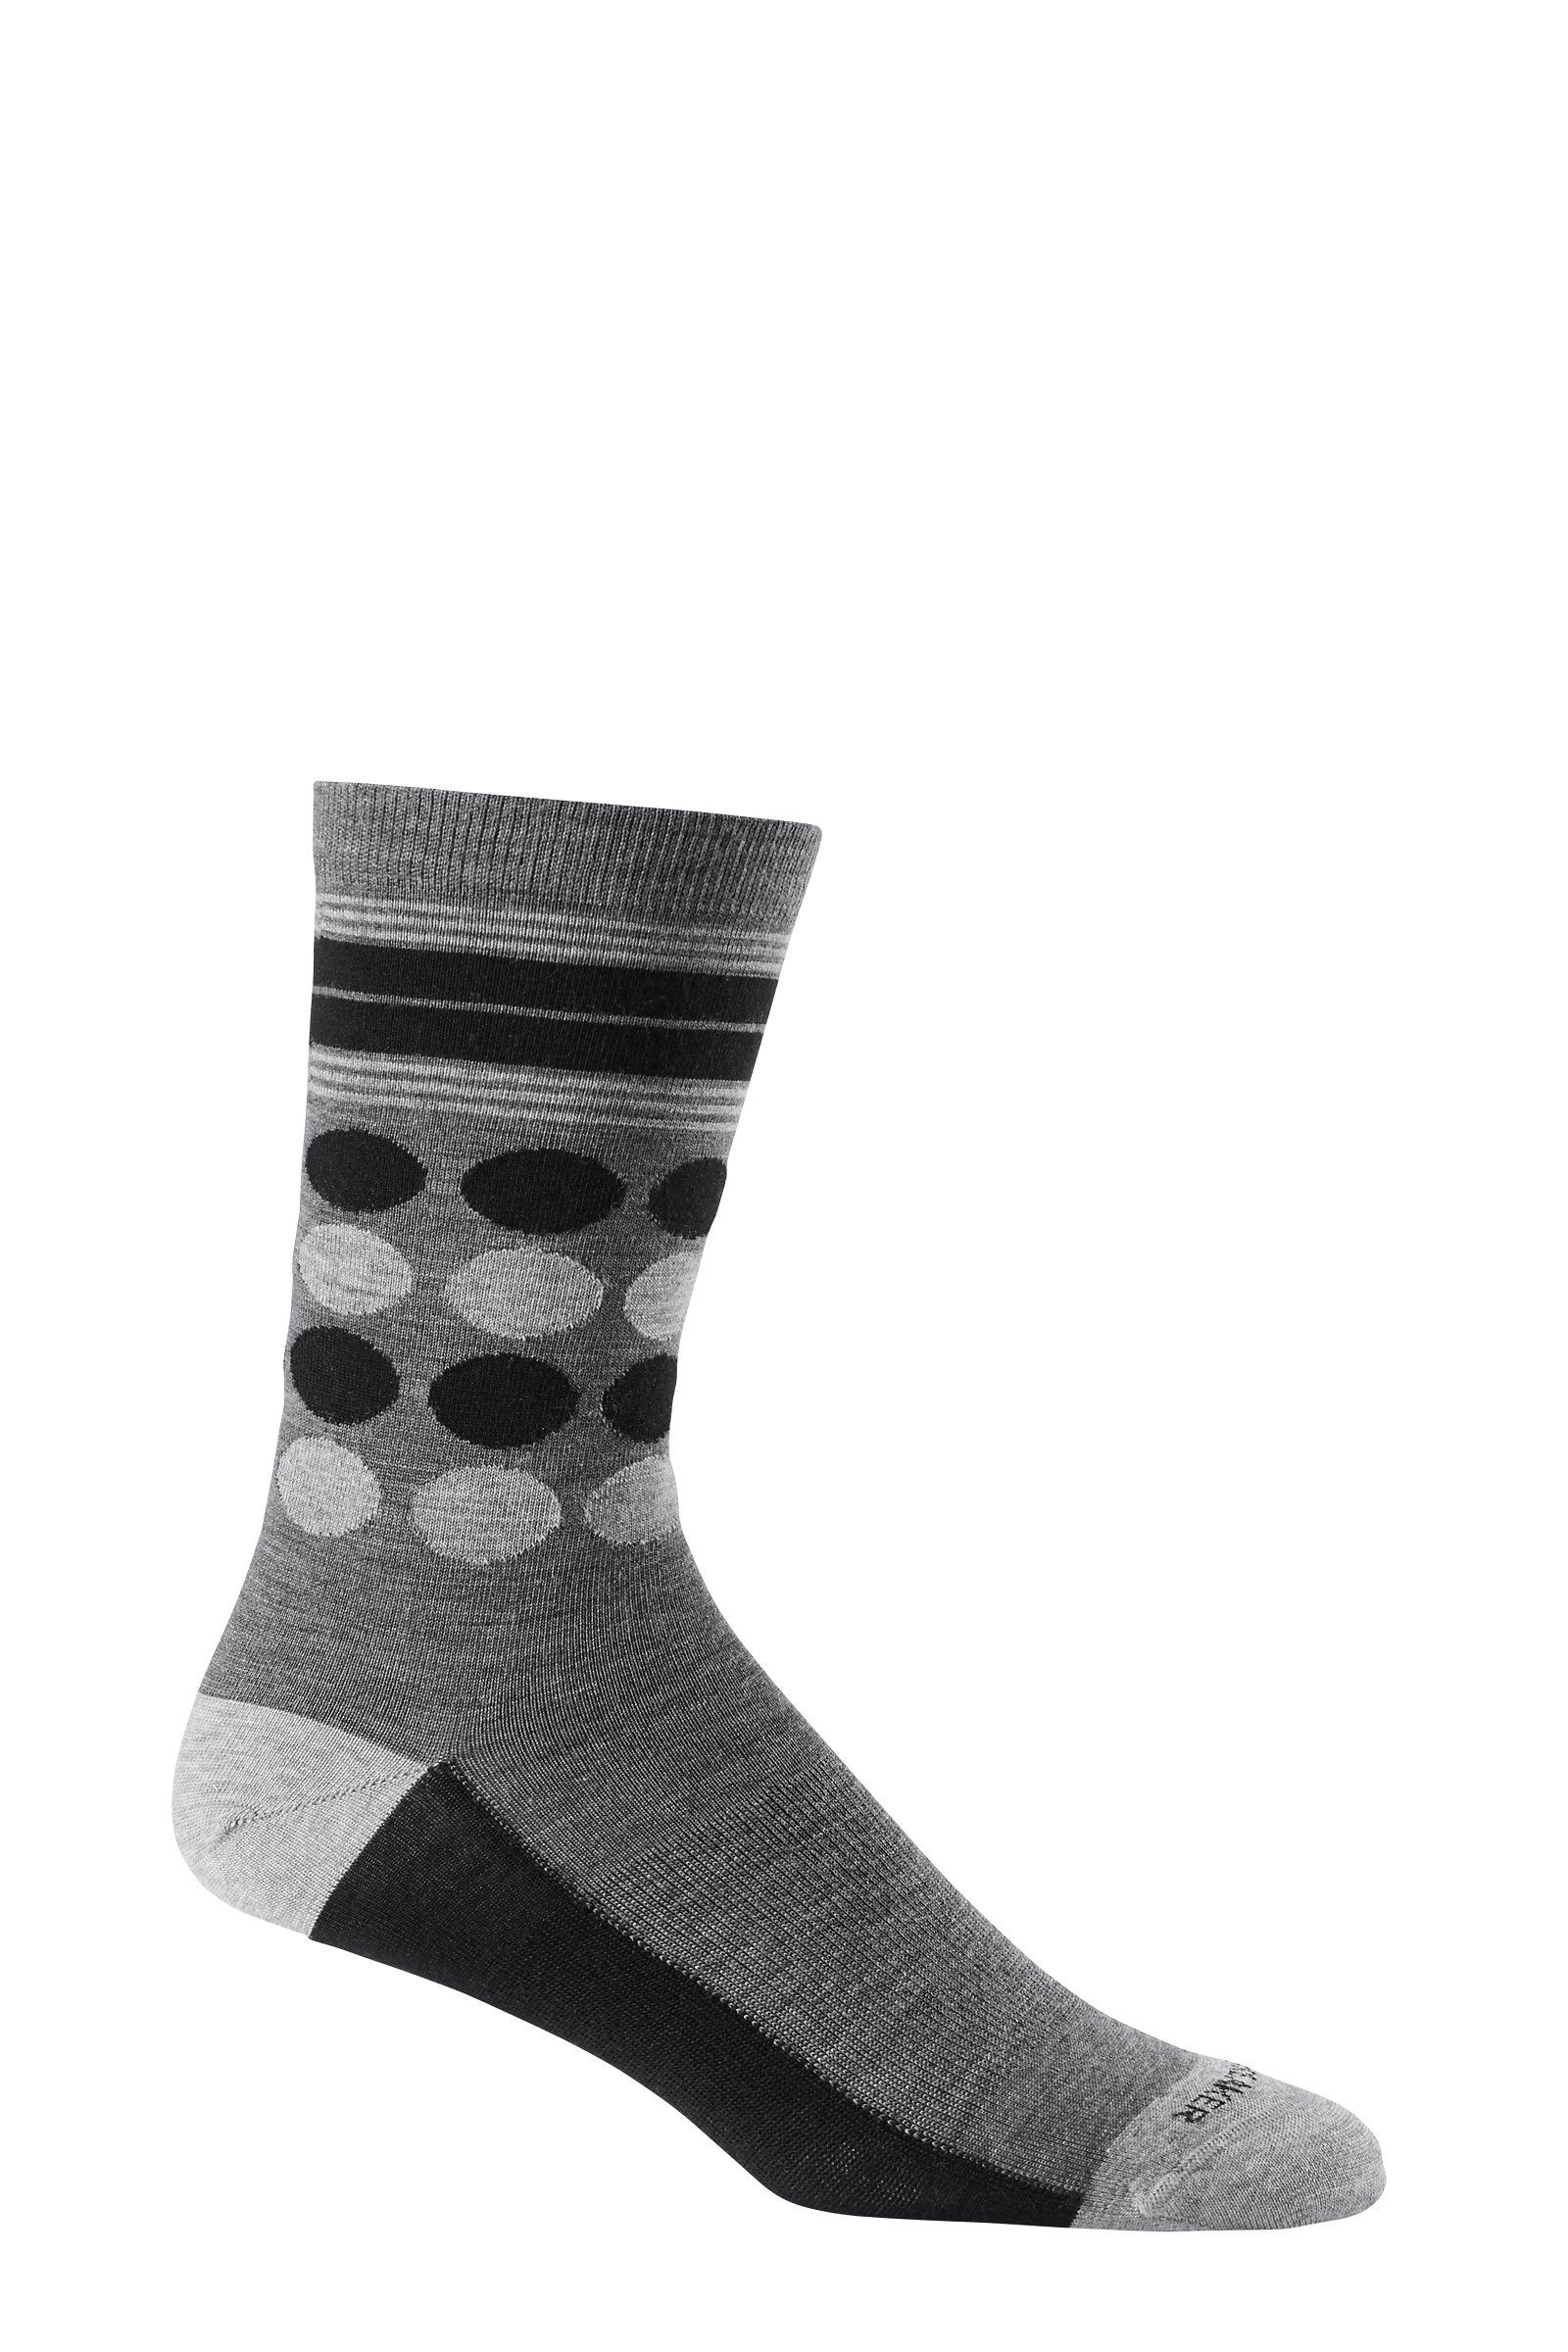 052371c365 Icebreaker Women's Lifestyle Fine Gauge Ultra Light Crew Dots Socks, Jet  Heather/Black/